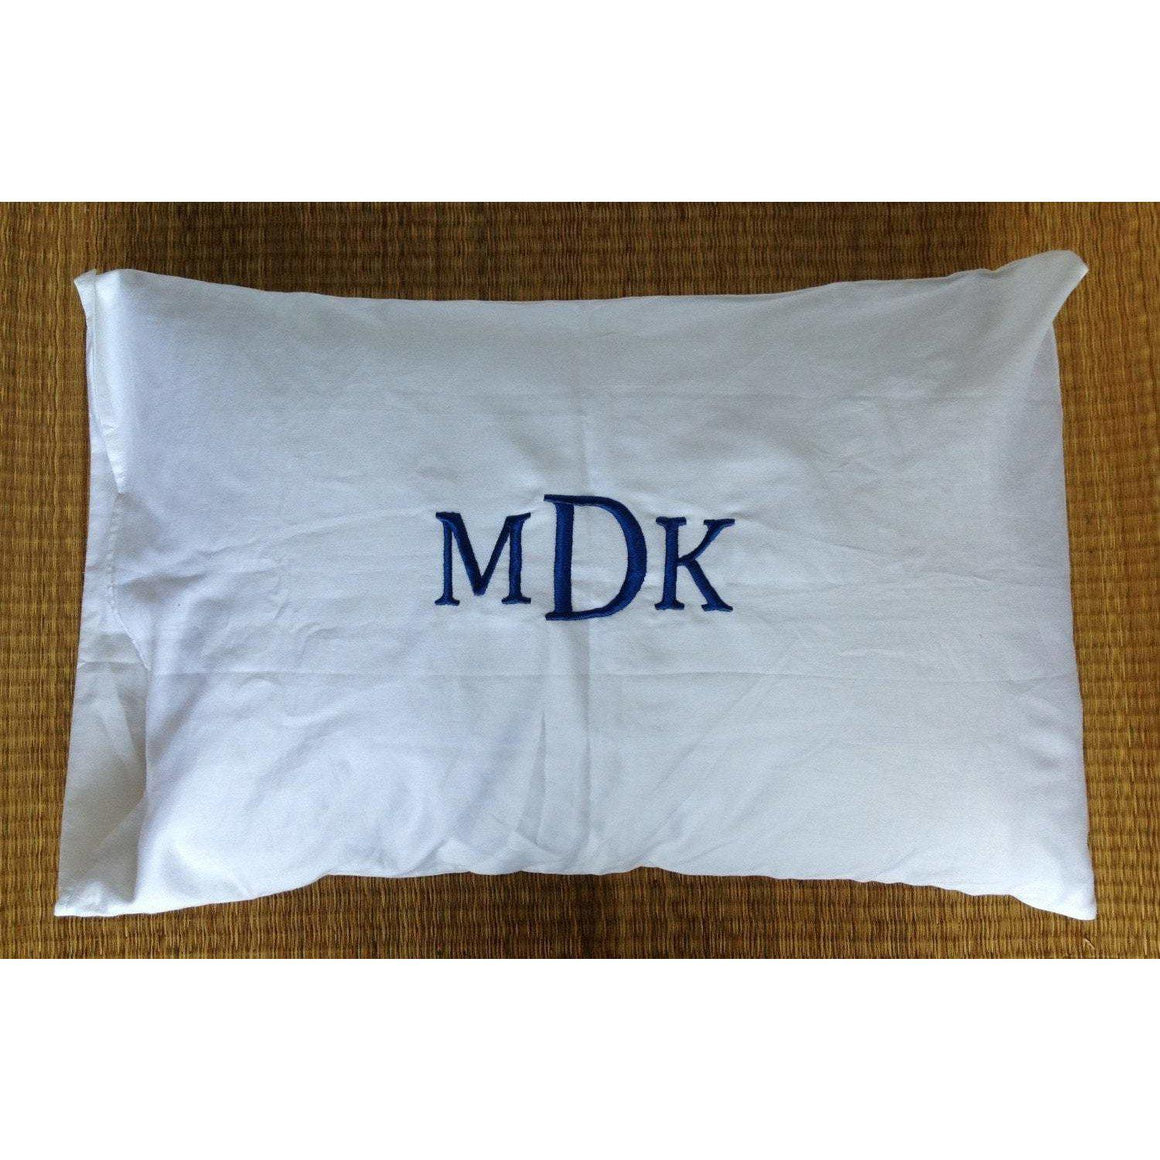 gift ideas for couples christmas, Monogrammed Pillowcase, (300 Thread Count) Monogram Pillow Case for Beds, White Monogram Pillow Case - Snazzy Living